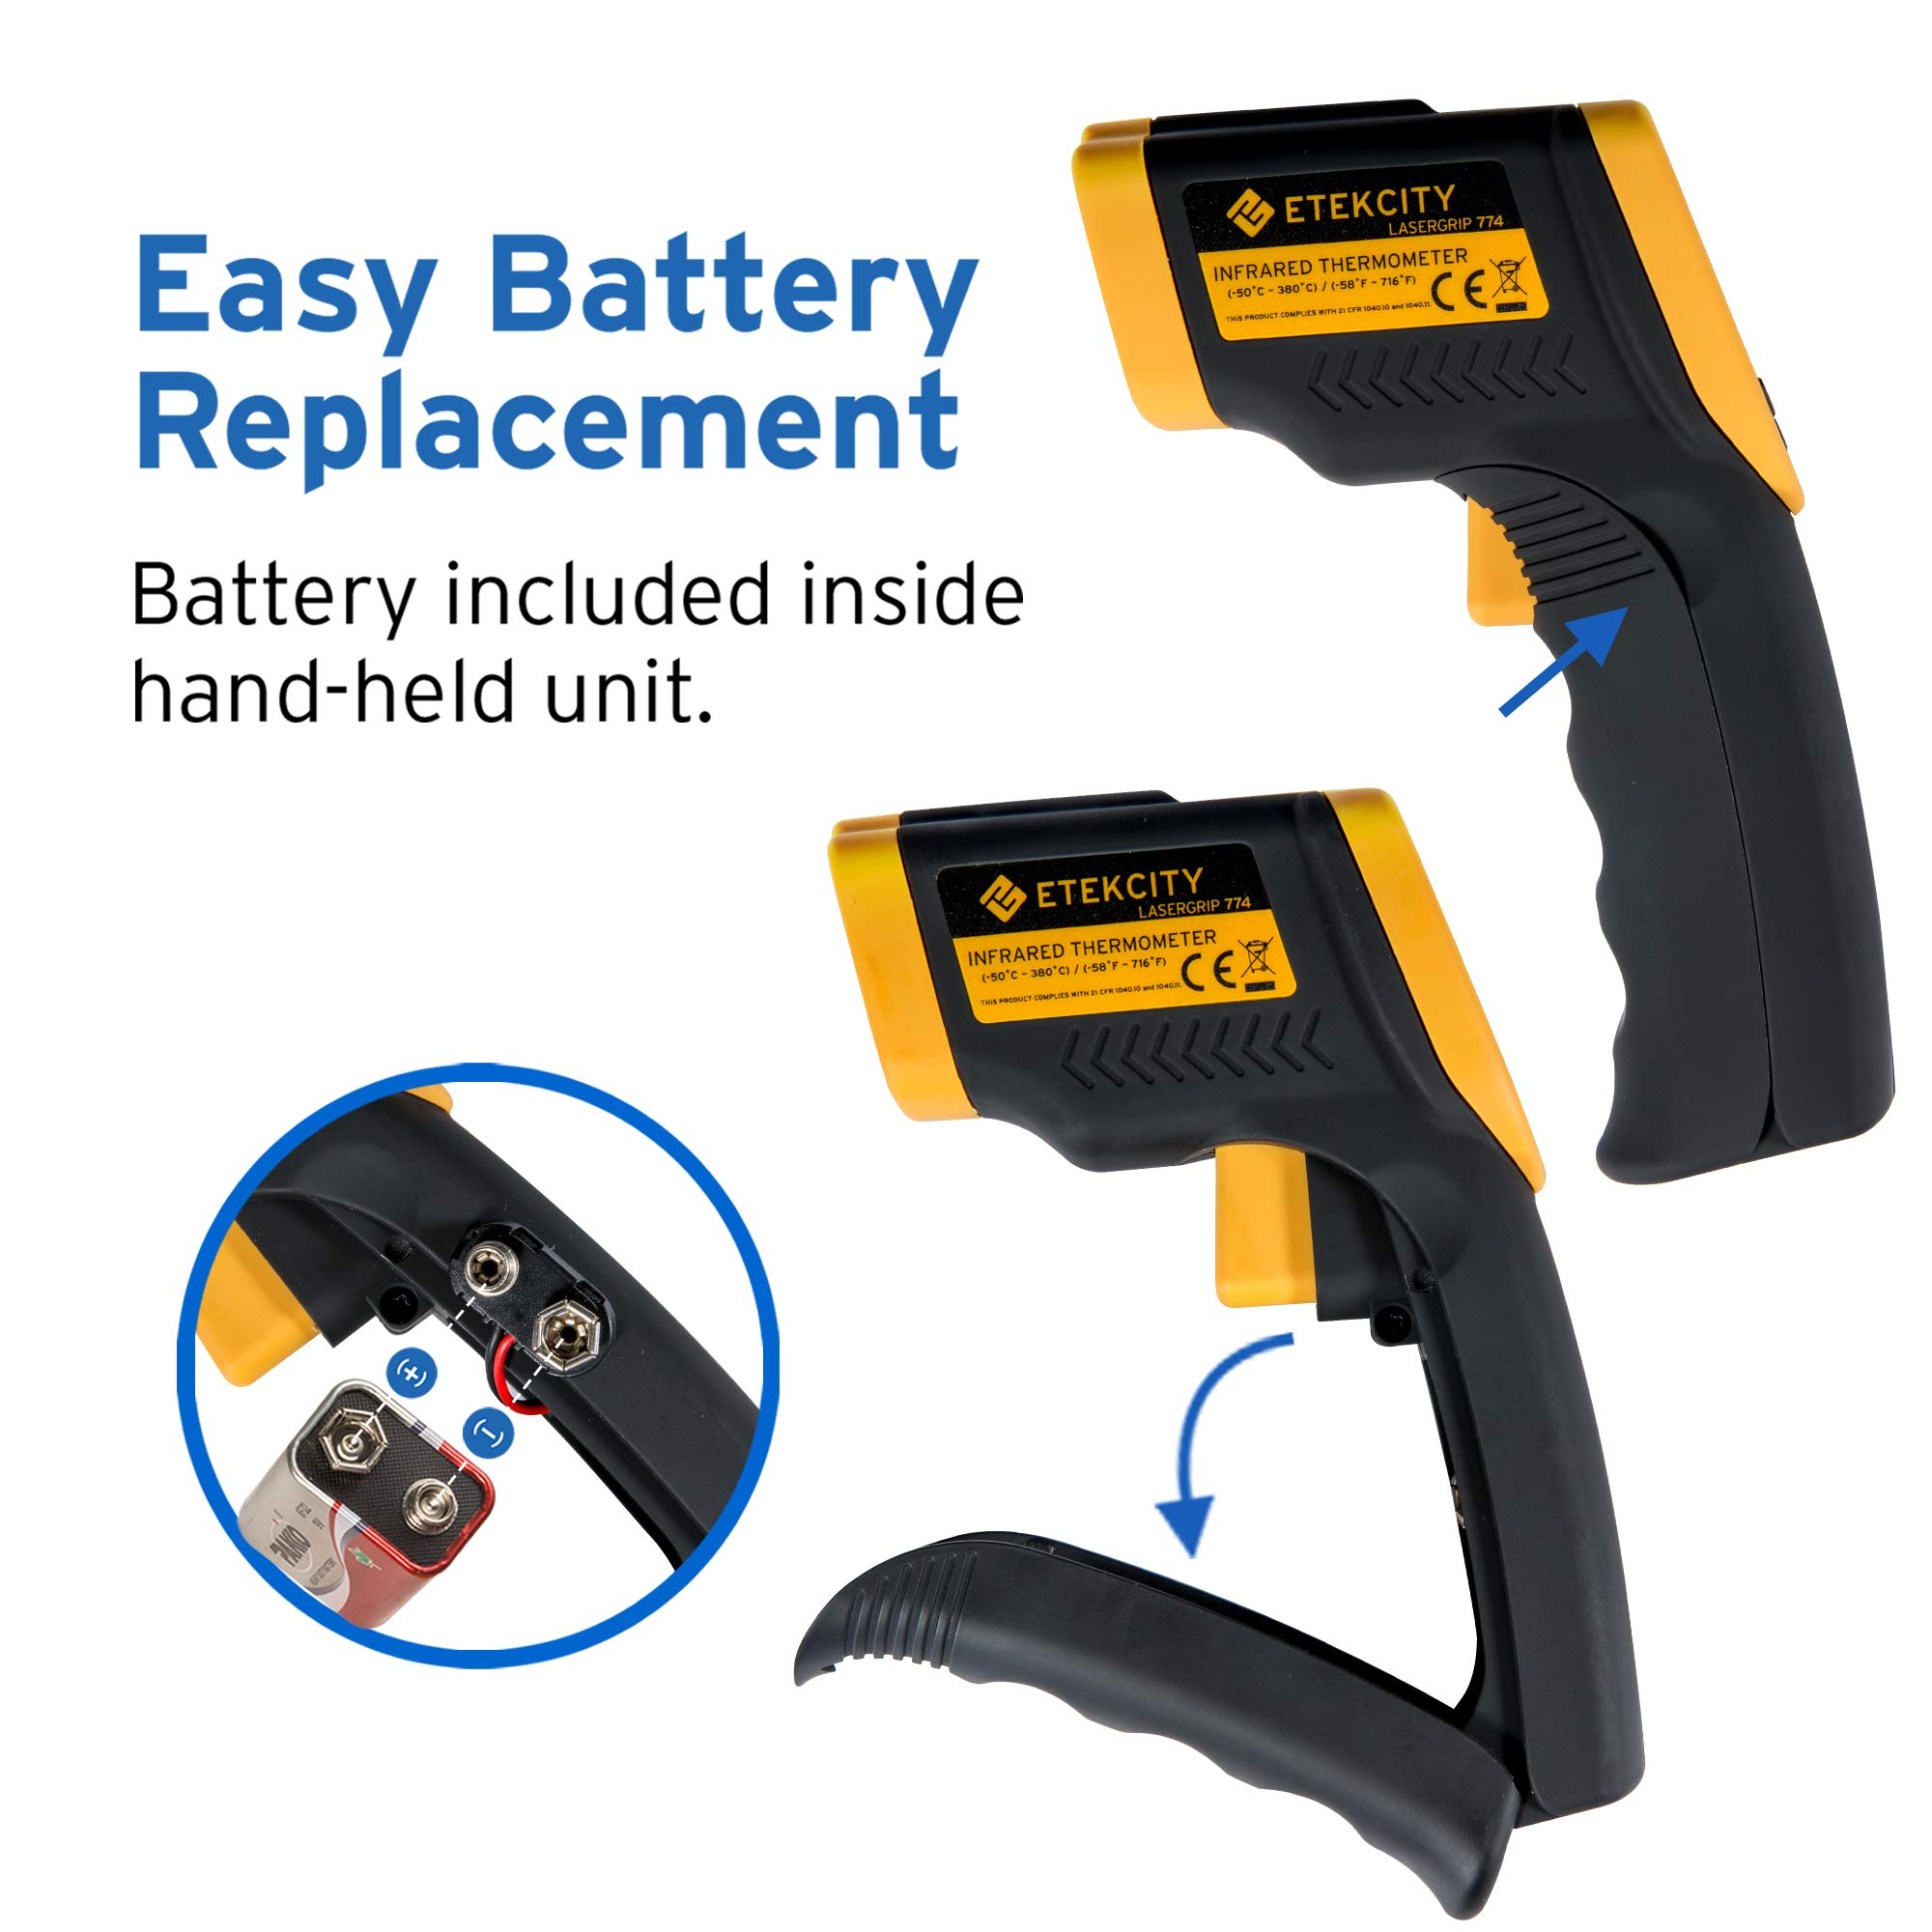 Etekcity Lasergrip 774 Non-contact Digital Laser Infrared Thermometer Temperature Gun -58℉~ 716℉ (-50℃ ~ 380℃), Yellow and Black by Etekcity (Image #3)